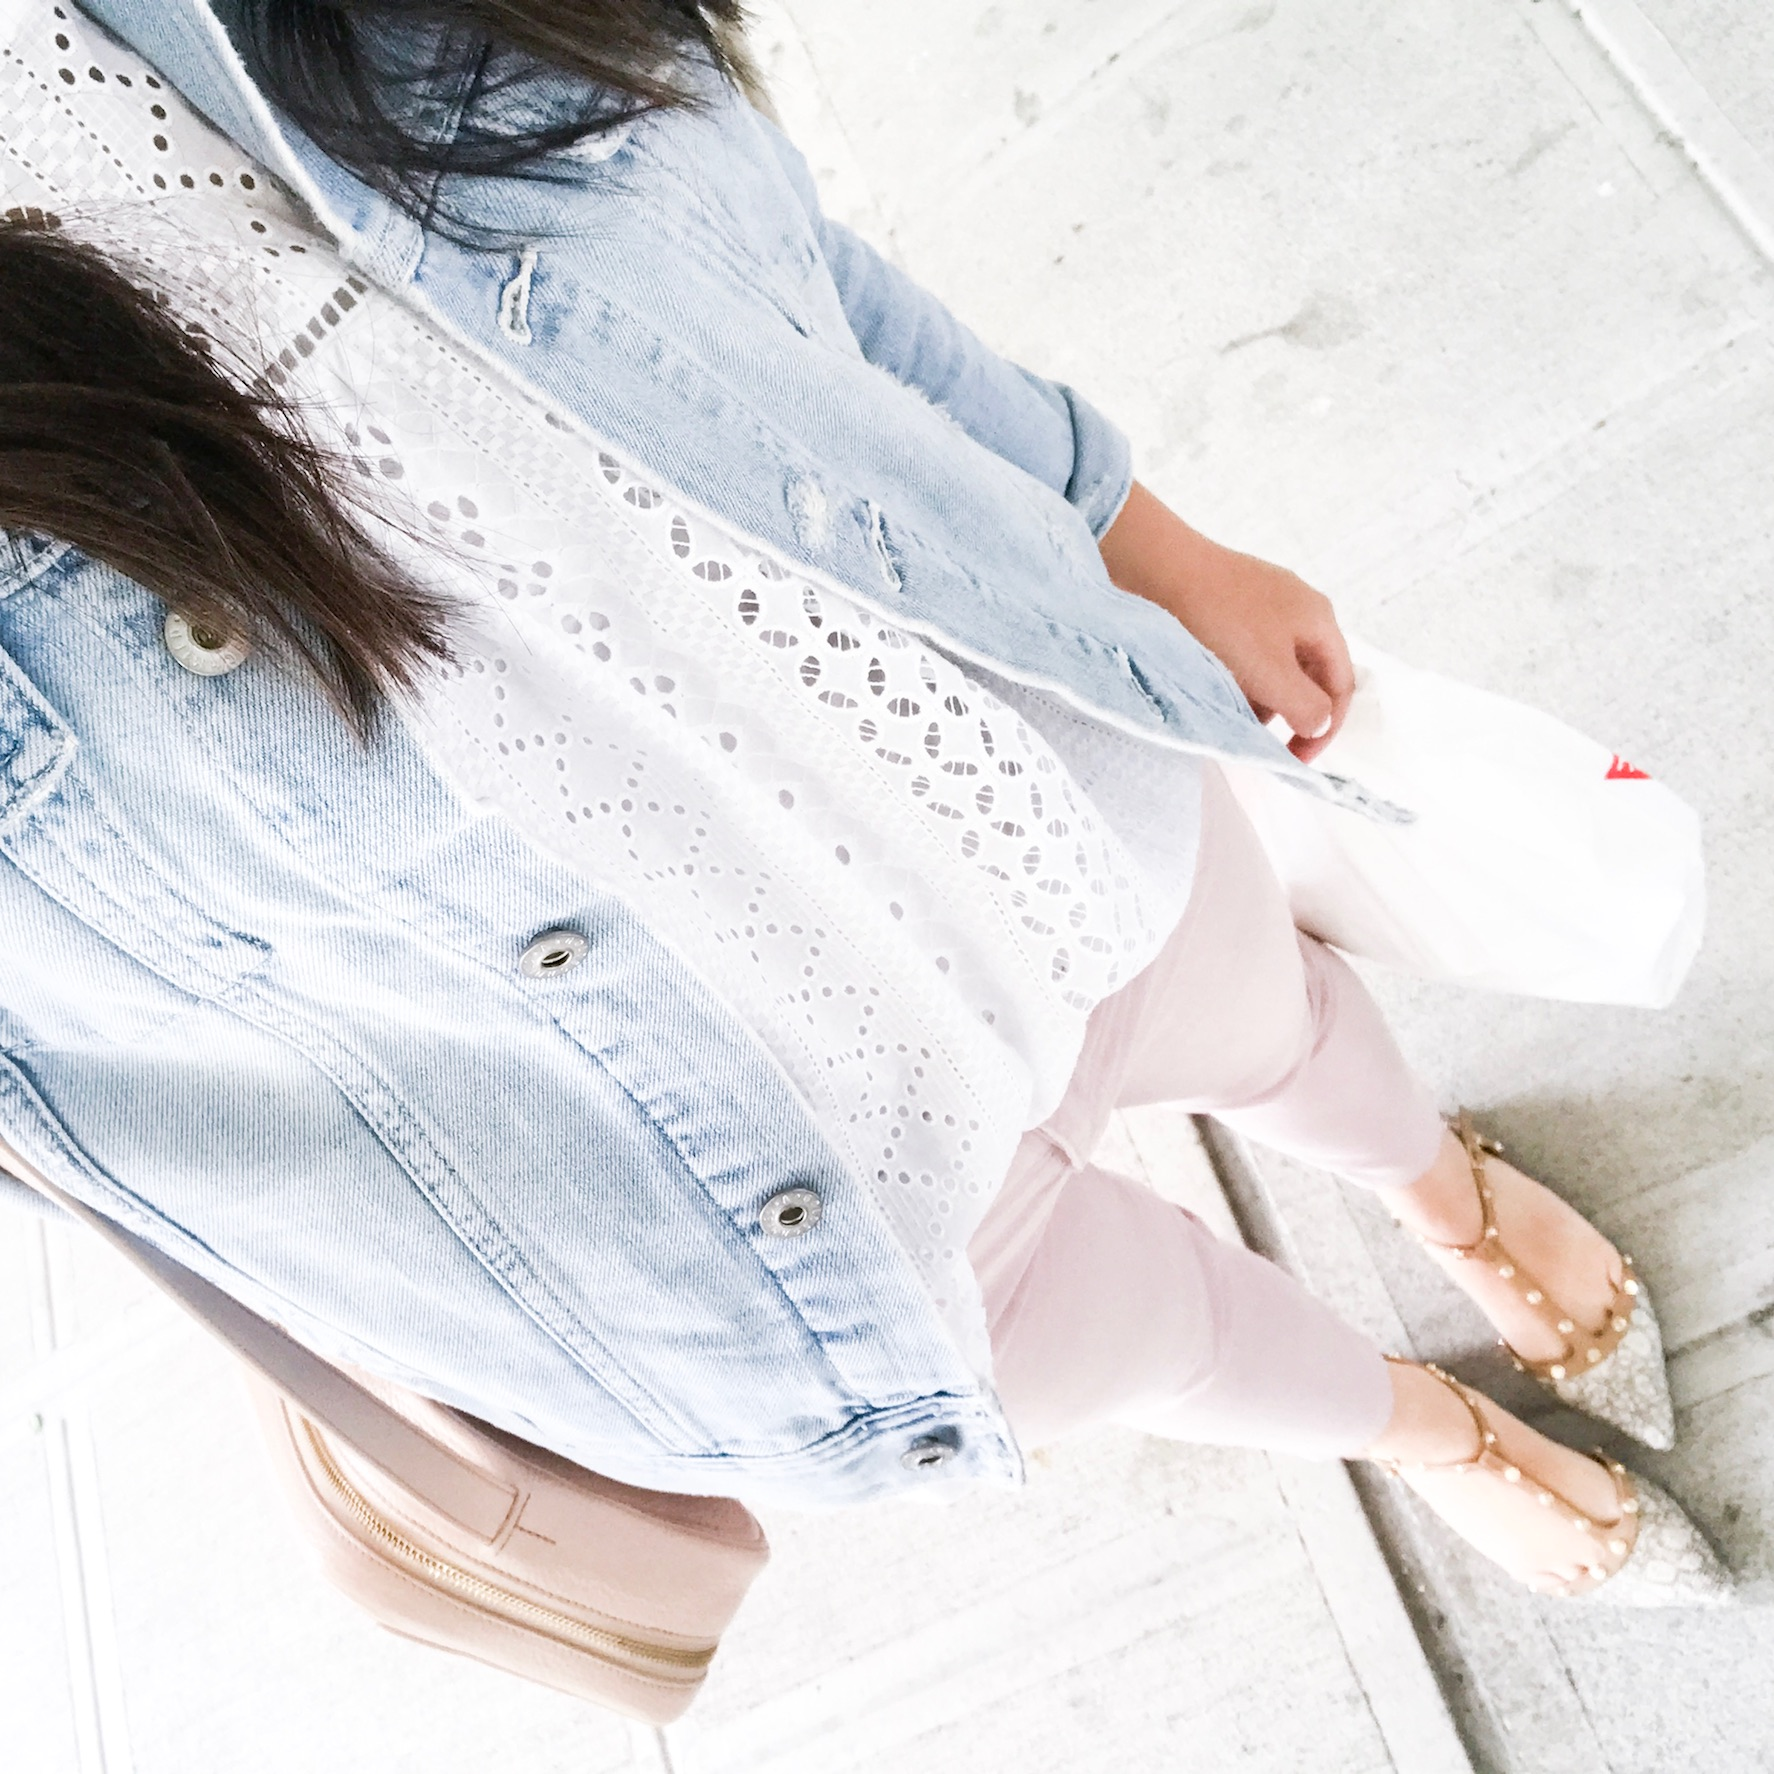 How to wear a denim jacket, eyelet top, blush jeans outfit, Seattle fashion blogger, petite blogger